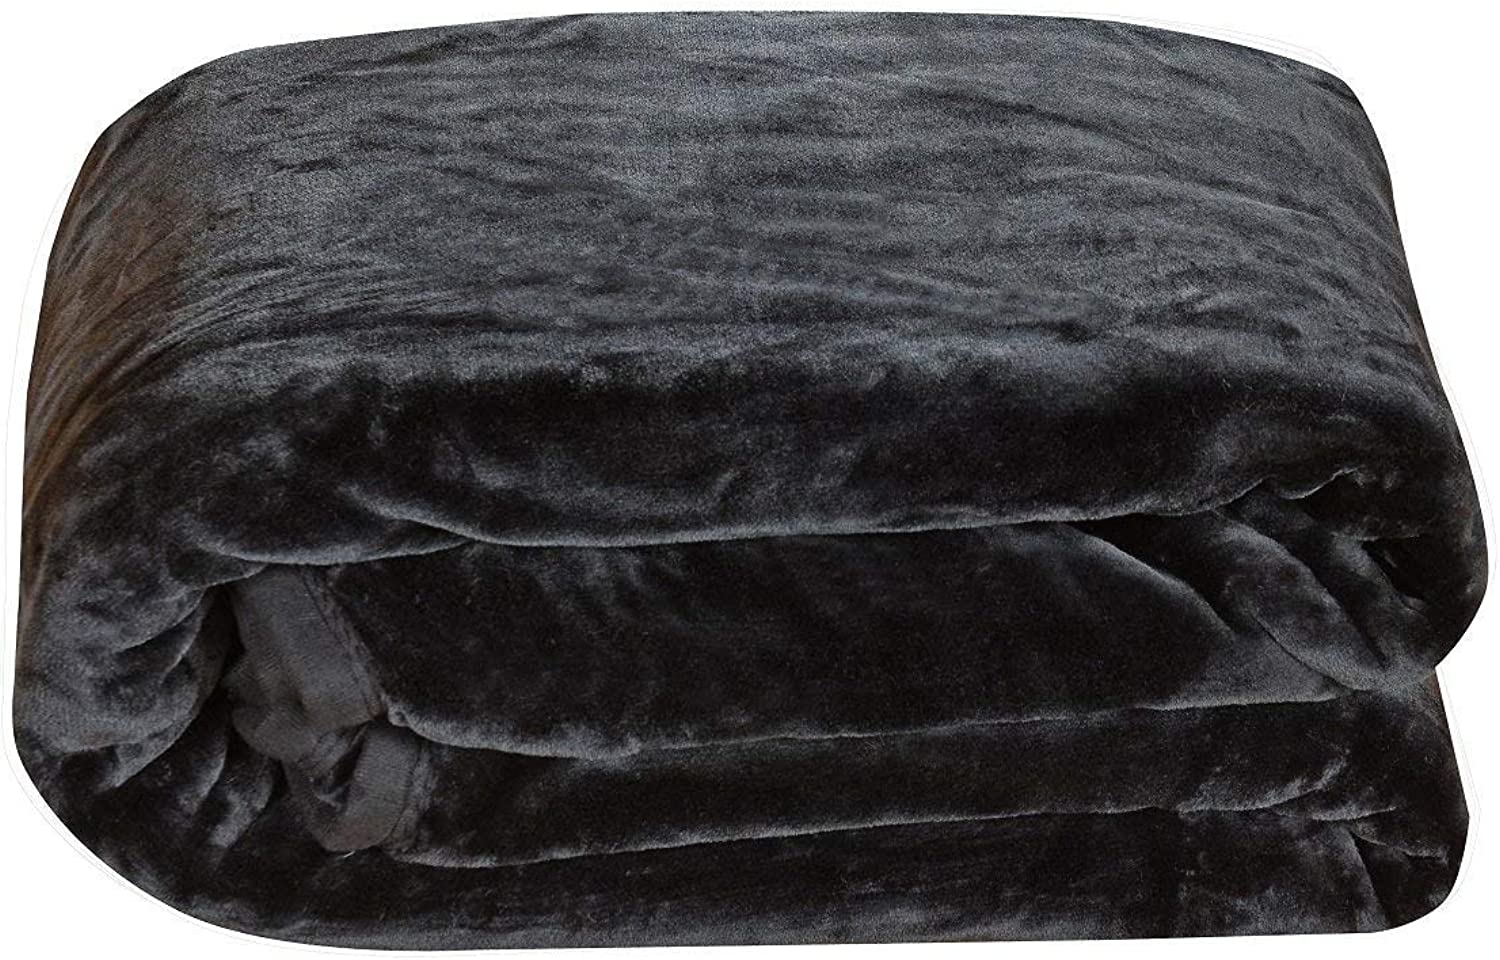 Chezmoi Collection Heavy Thick One Ply Korean Style Faux Mink Blanket 8-Pound Oversized Queen 90x92 (Queen, Black)